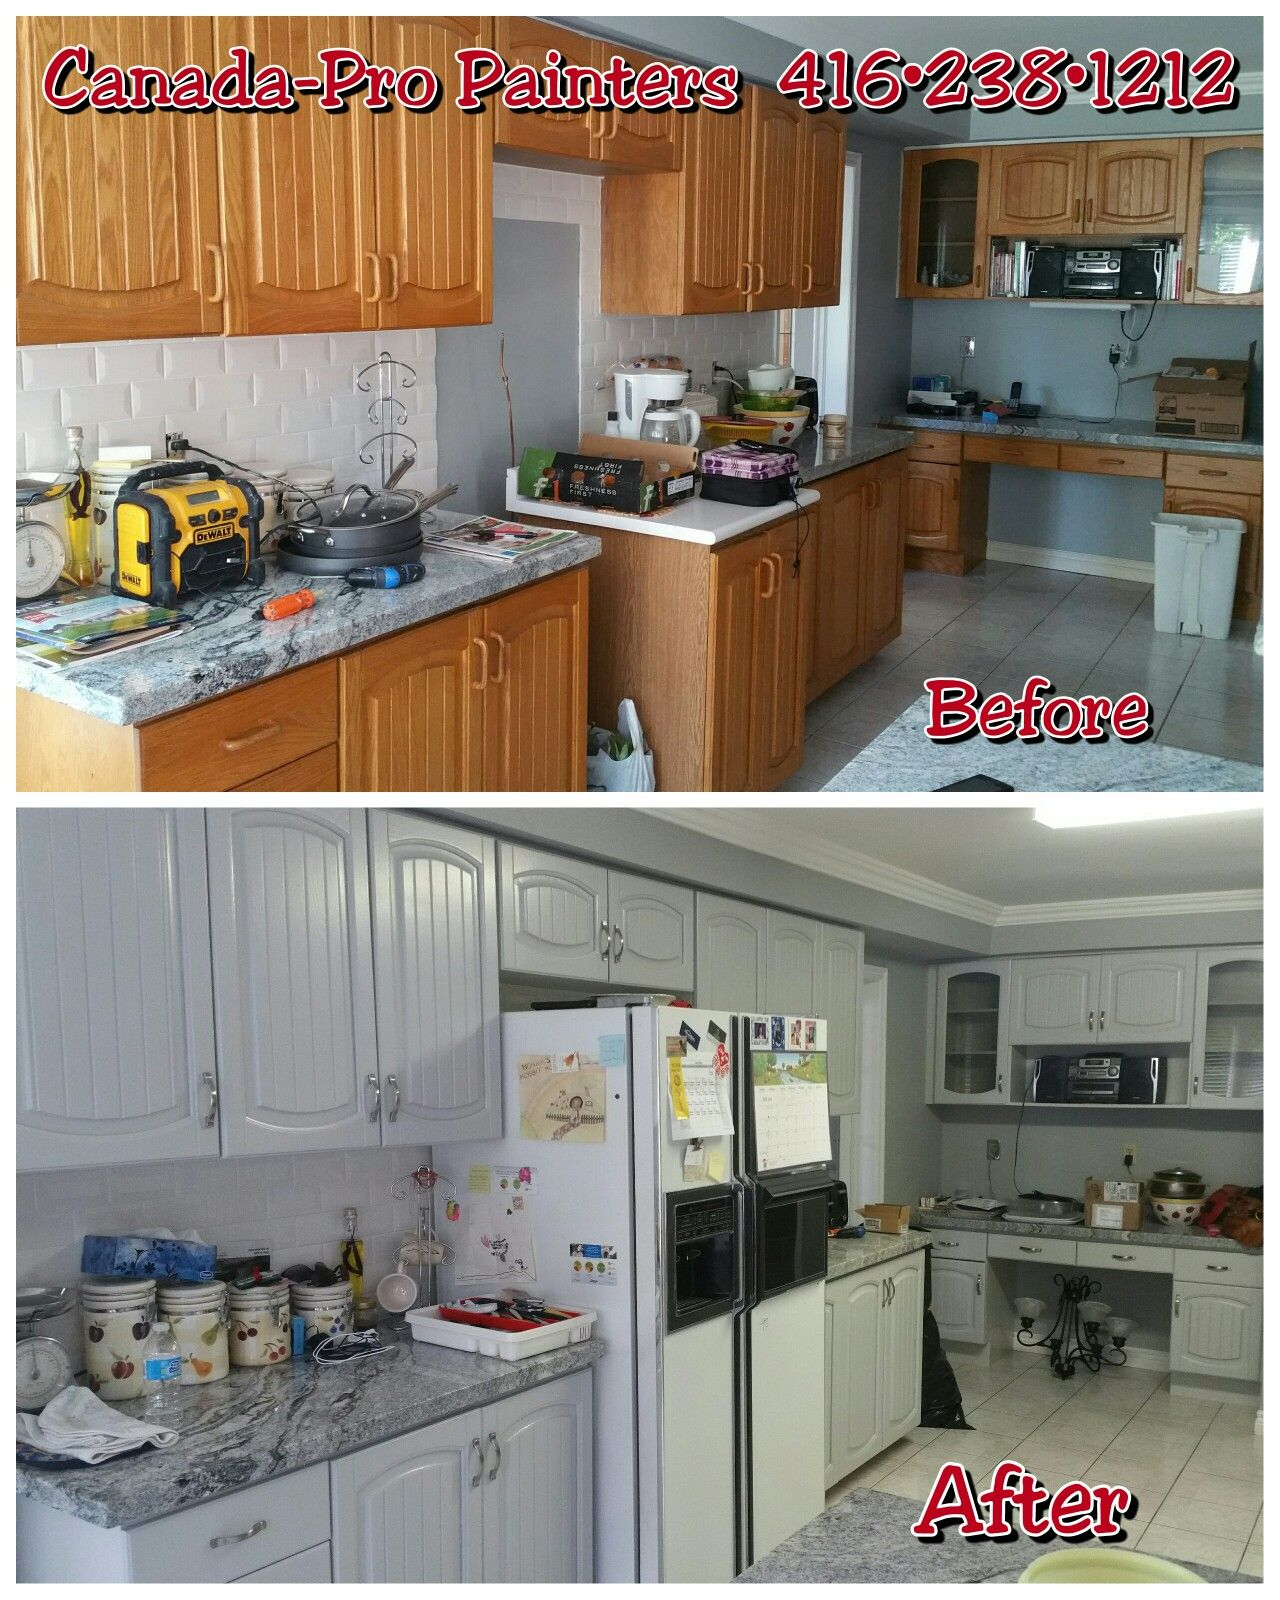 Repainting Painted Kitchen Cabinets: Oak Kitchen Cabinets Painted Benjamin Moore HC-170